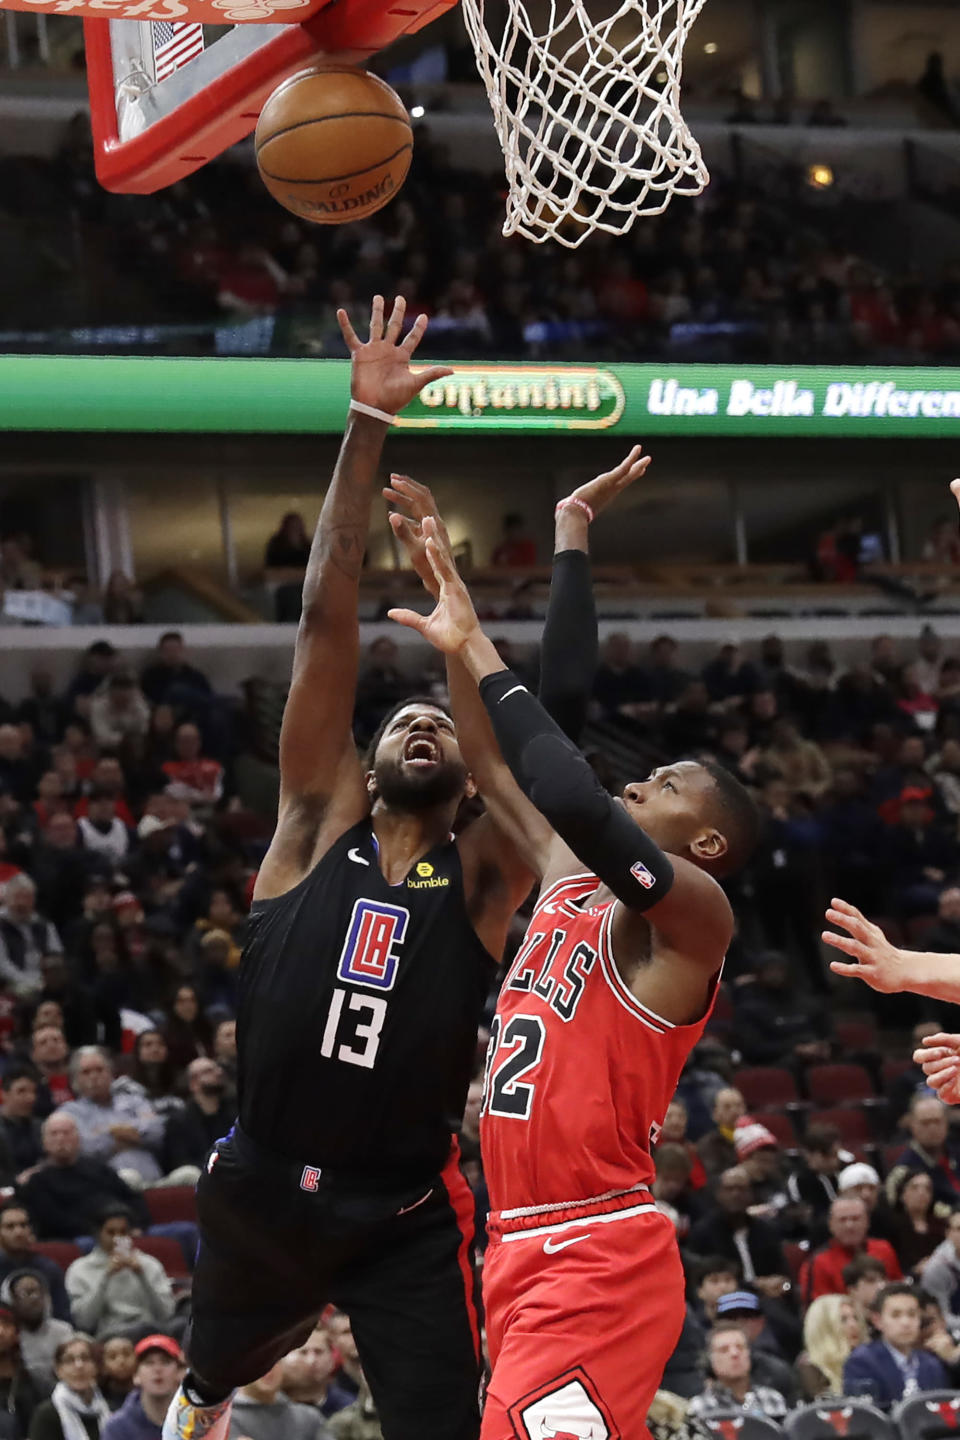 Los Angeles Clippers forward Paul George, left, and Chicago Bulls forward Kris Dunn battle for a loose ball during the first half of an NBA basketball game Saturday, Dec. 14, 2019, in Chicago. (AP Photo/Nam Y. Huh)